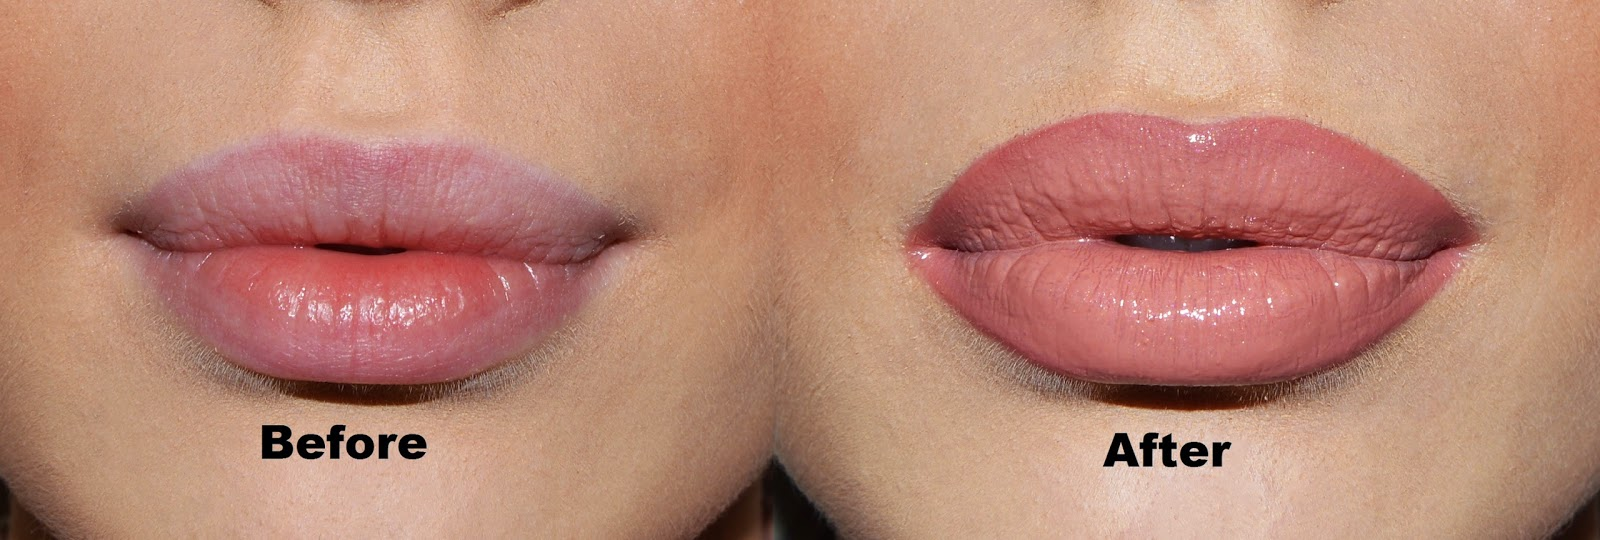 How To Make Your Lips Look Fuller & Bigger - PERFECT AND BEAUTIFUL WORLD